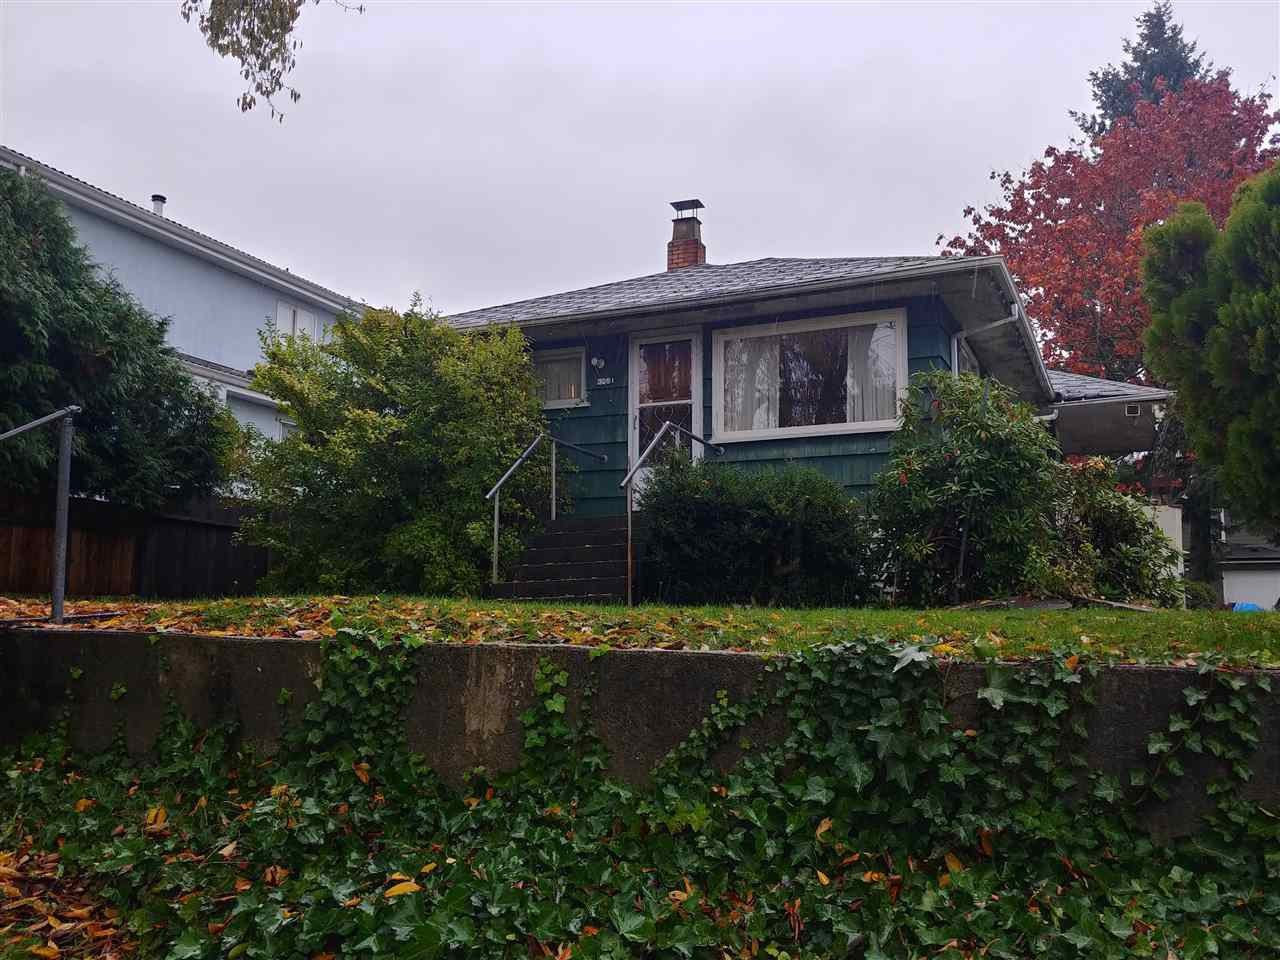 Main Photo: 3551 WELLINGTON Avenue in Vancouver: Collingwood VE House for sale (Vancouver East)  : MLS®# R2415206